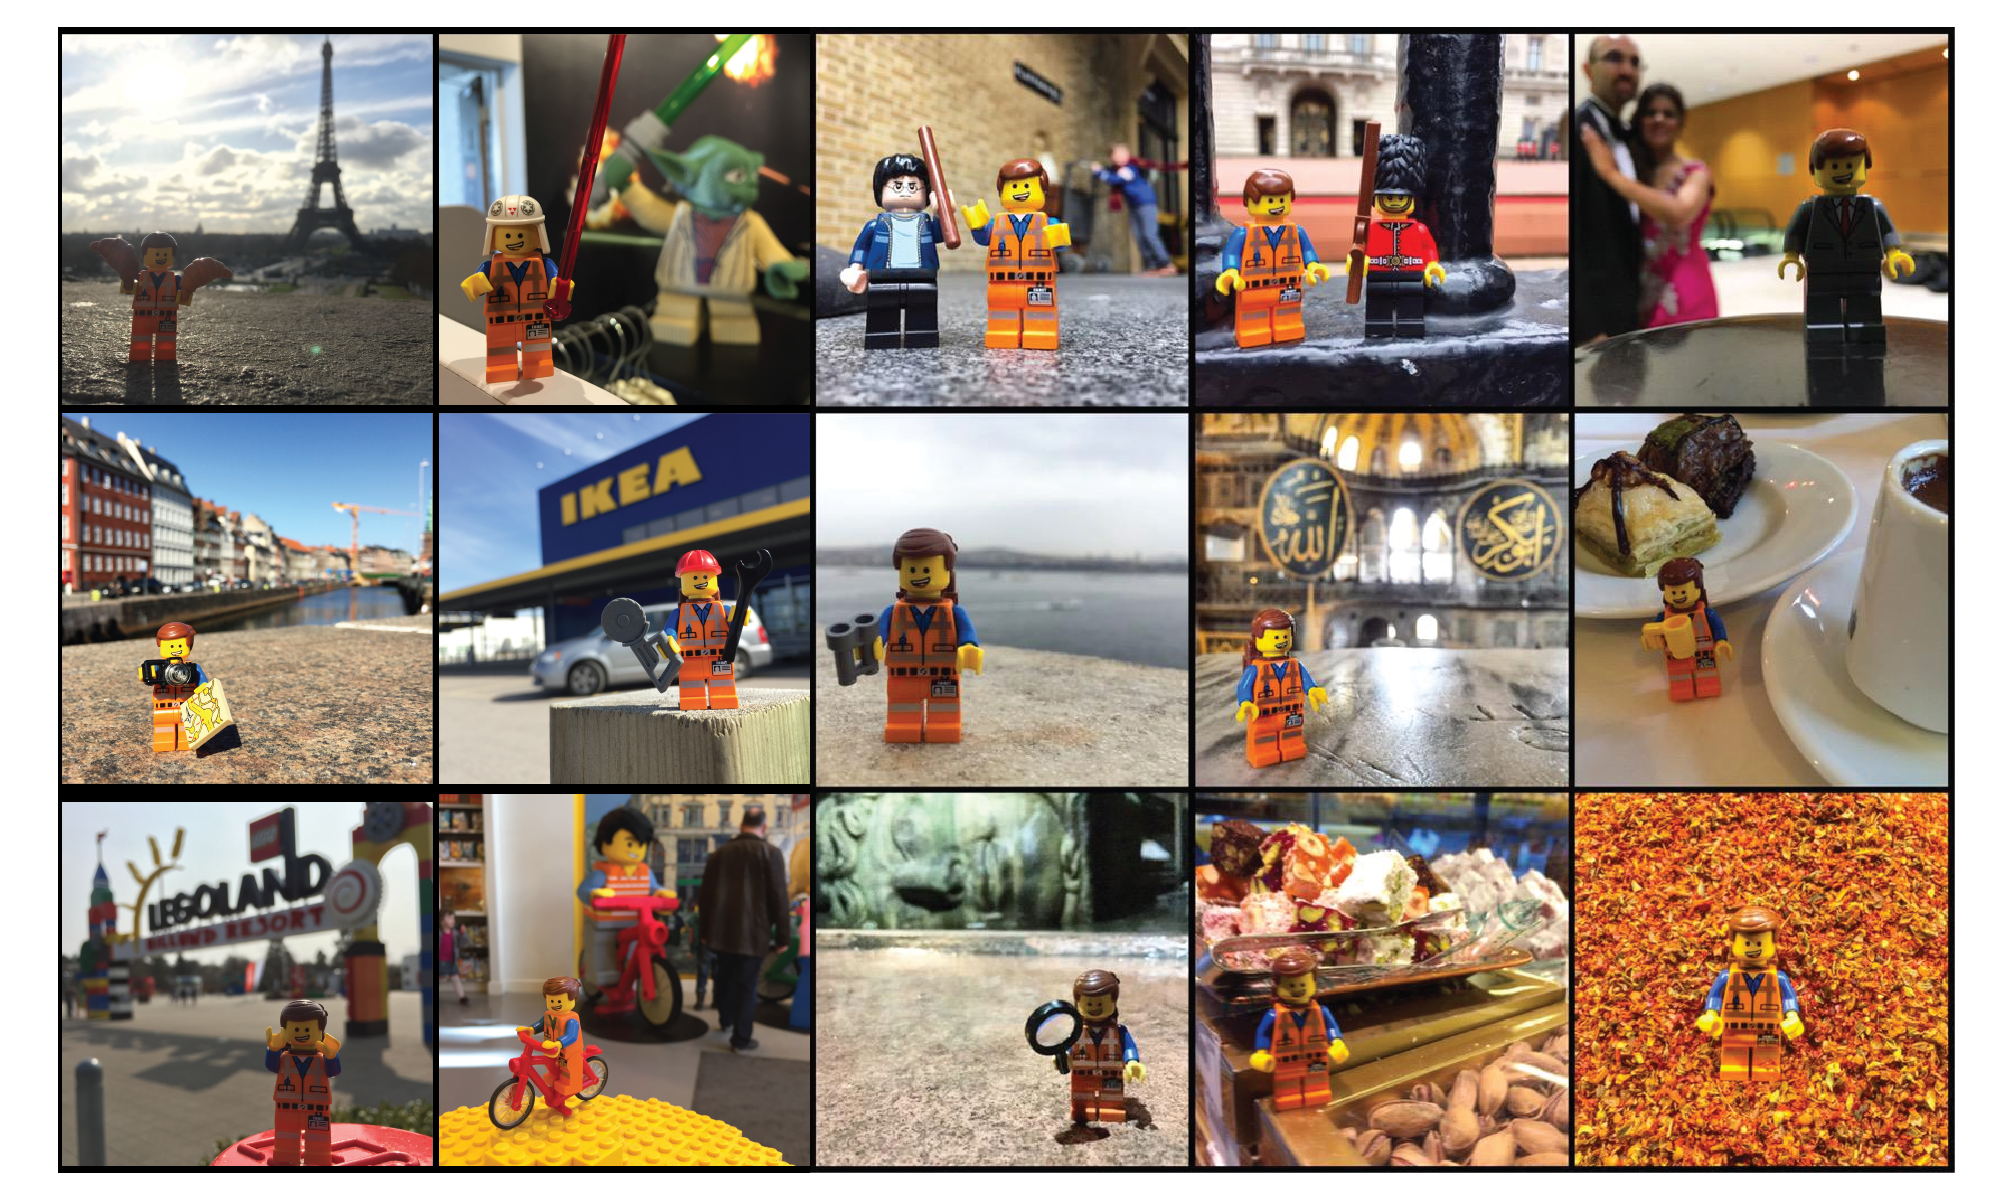 lego-01.png